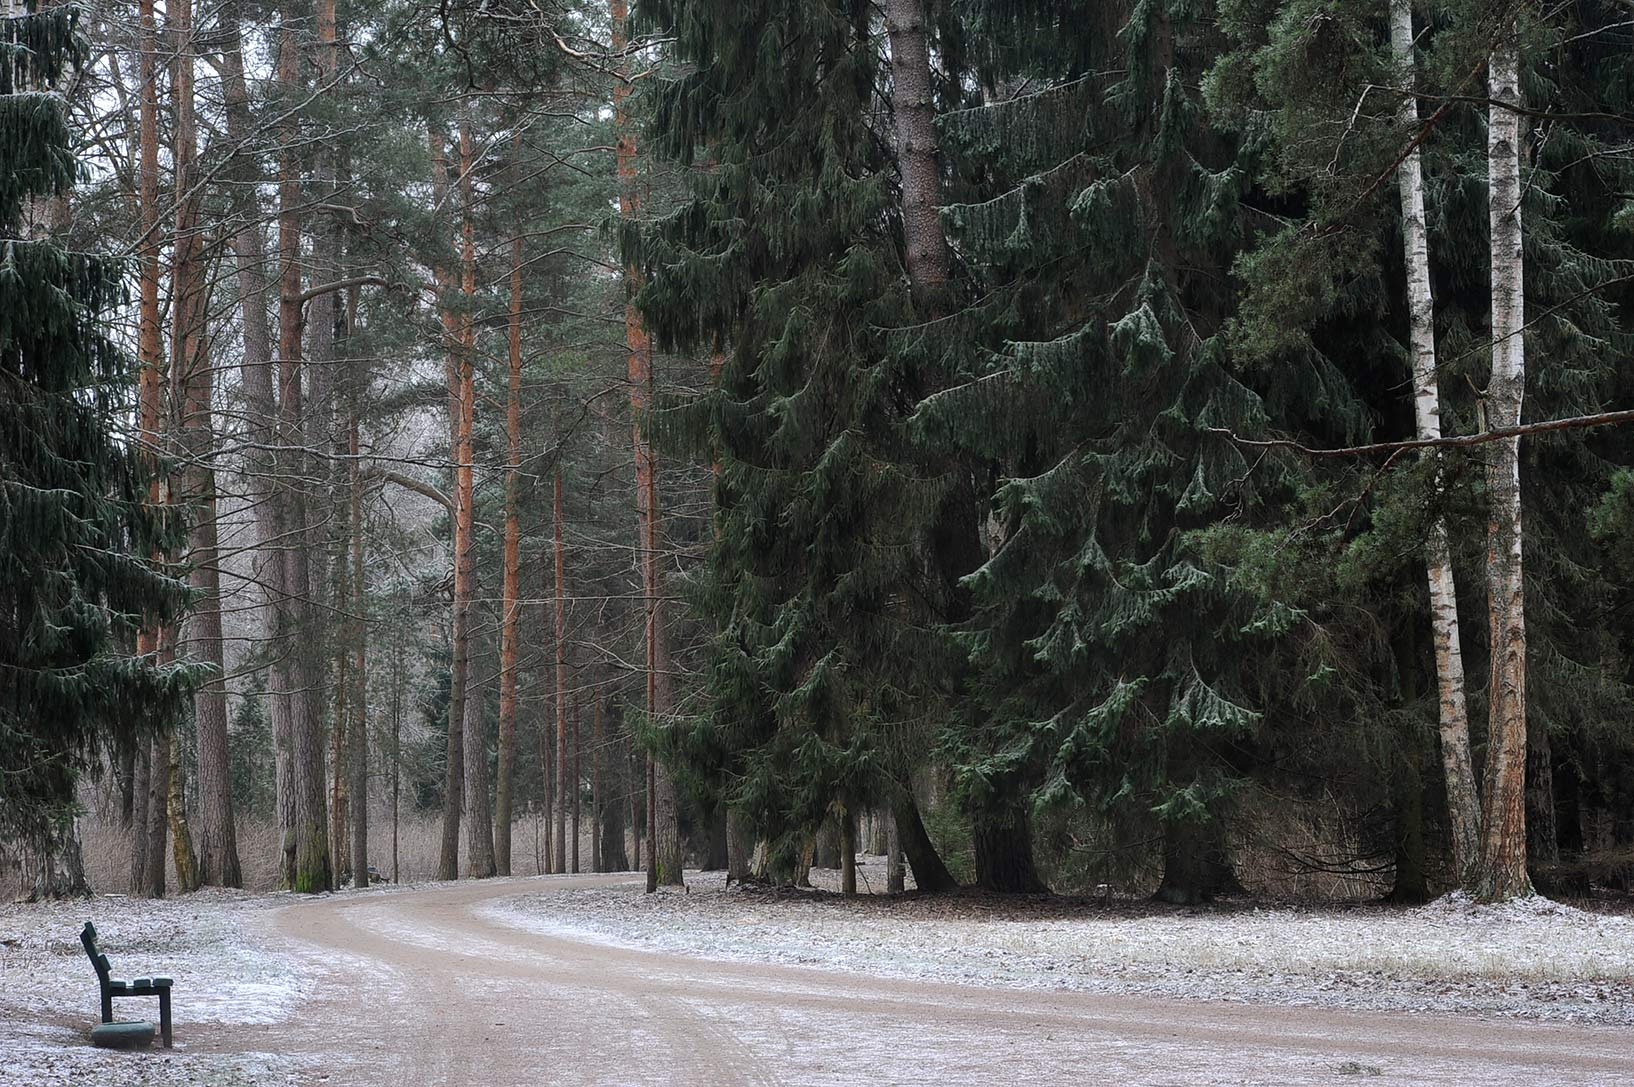 Spruce trees on Krasnodolinnaya Alley in Pavlovsk...suburb of St.Petersburg, Russia